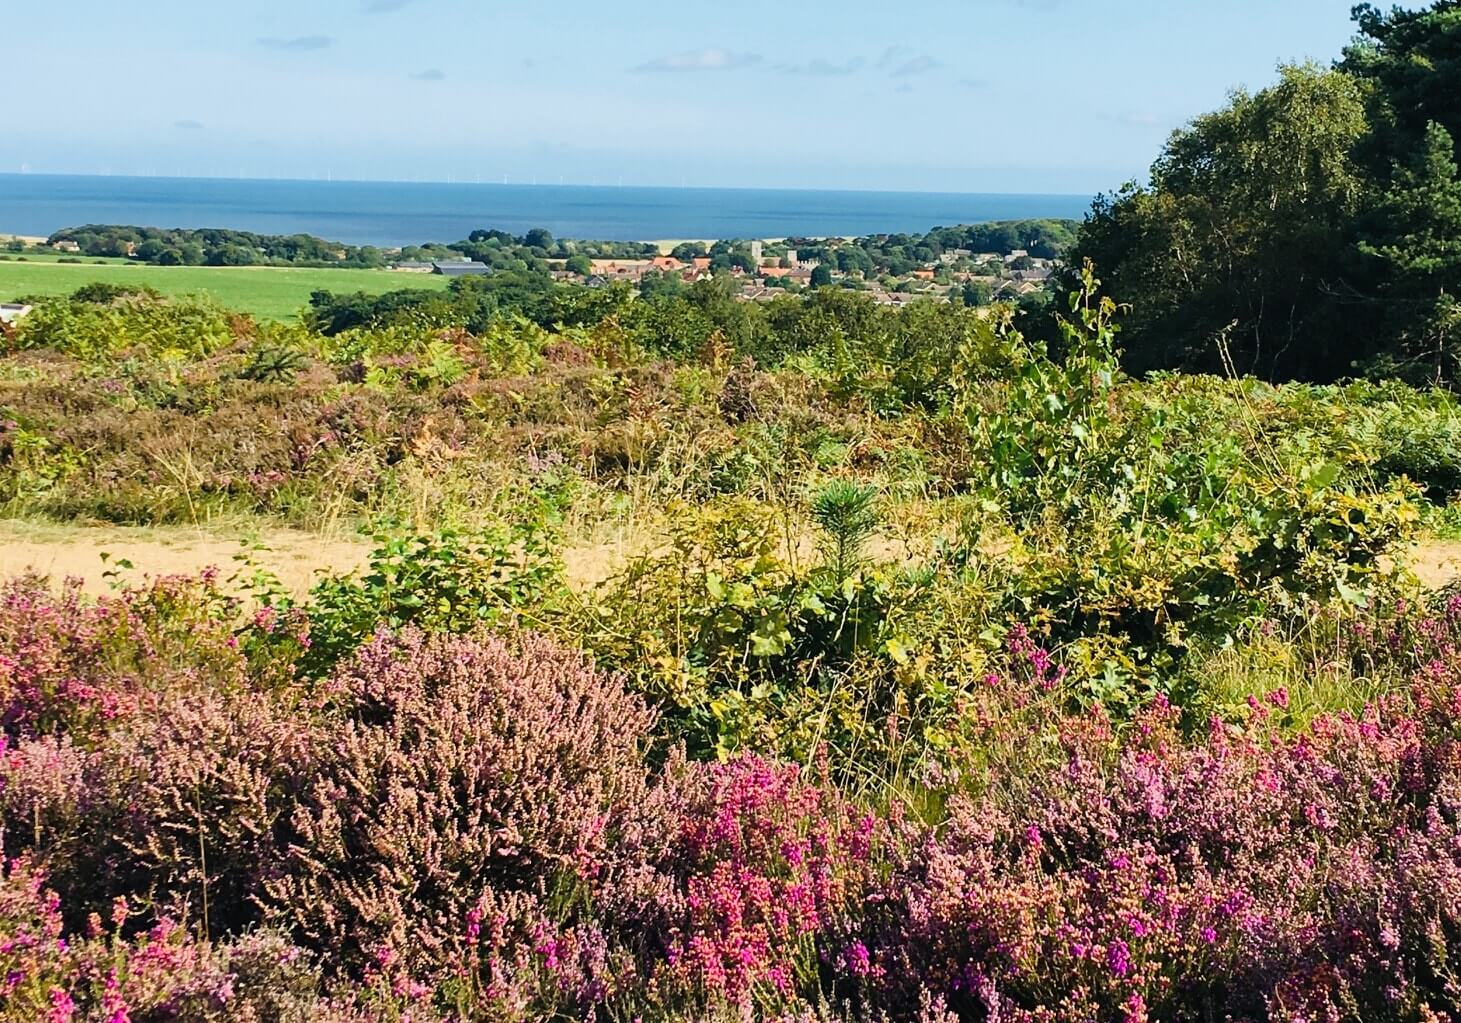 The view from Kelling Heath out to sea - a great alternative to Centre Parcs for natural surrounds and lodge holidays